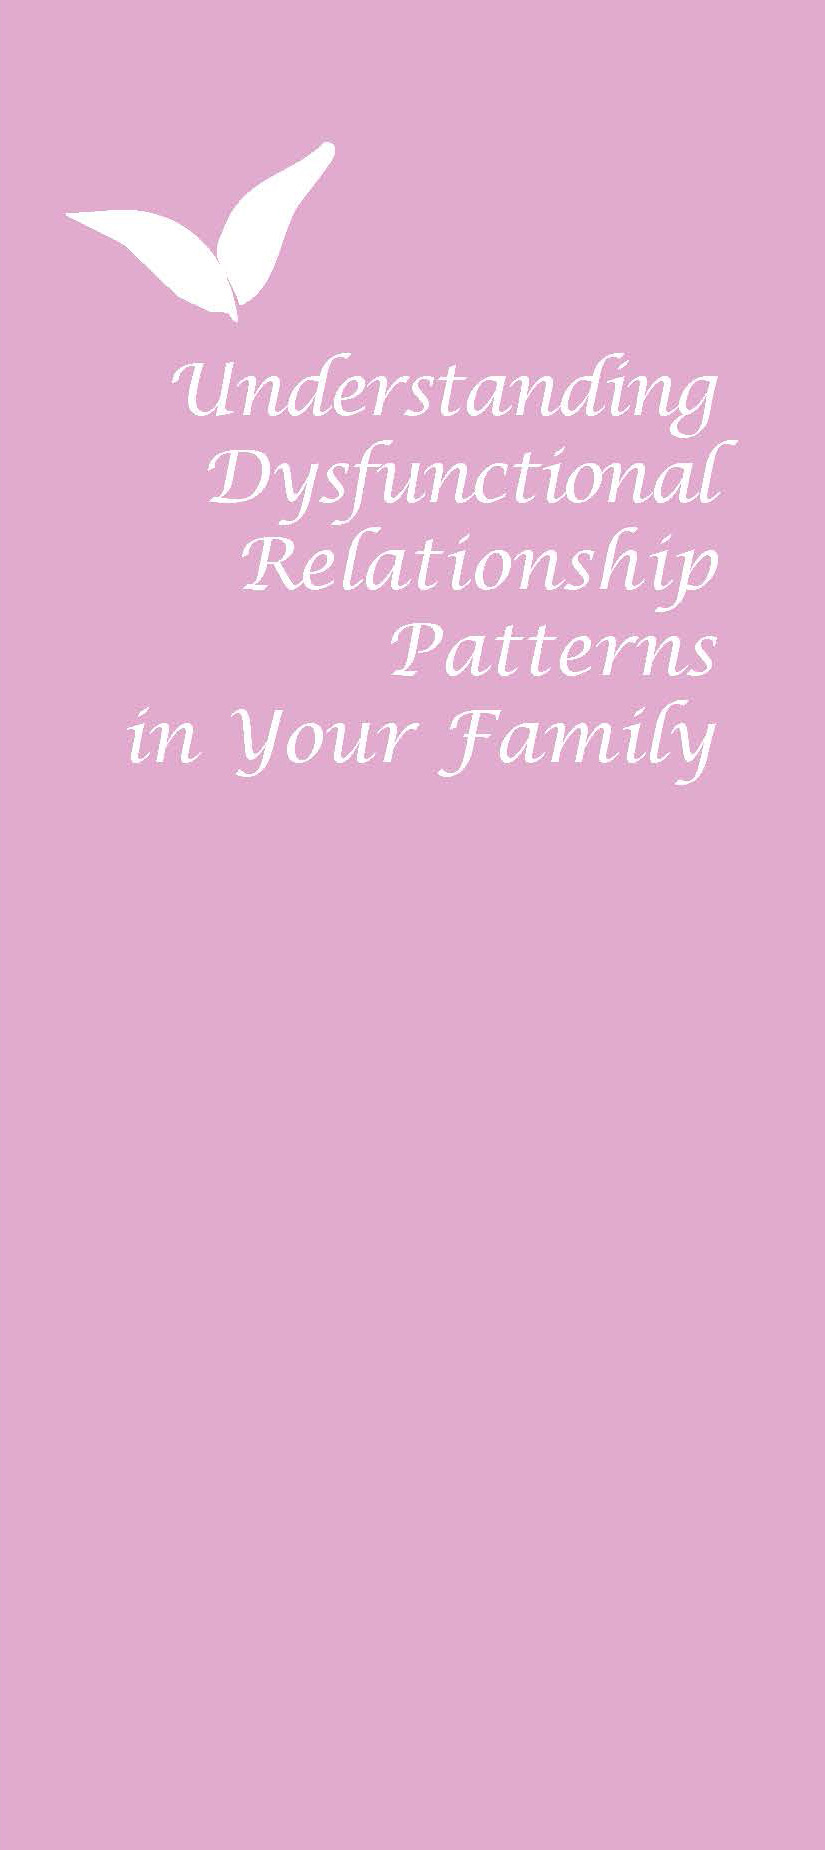 understanding dysfunctional relationship patterns in your family